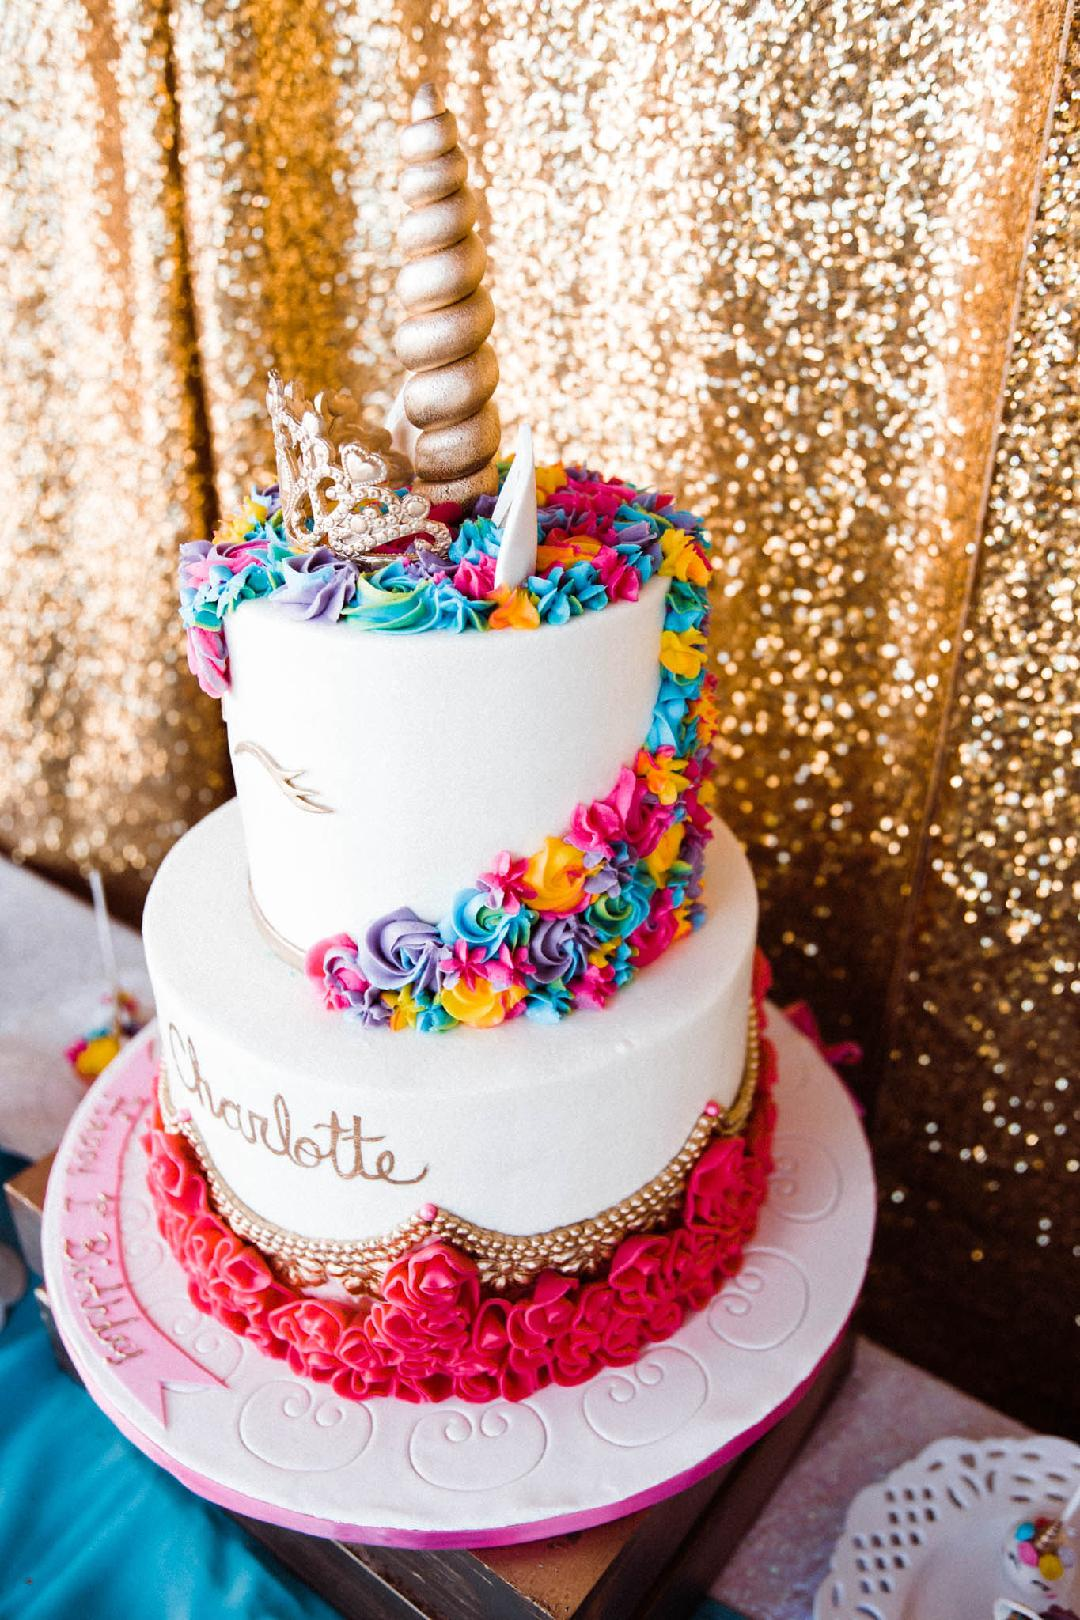 houston kids birthday party planner rainbows and wishes 8.jpg